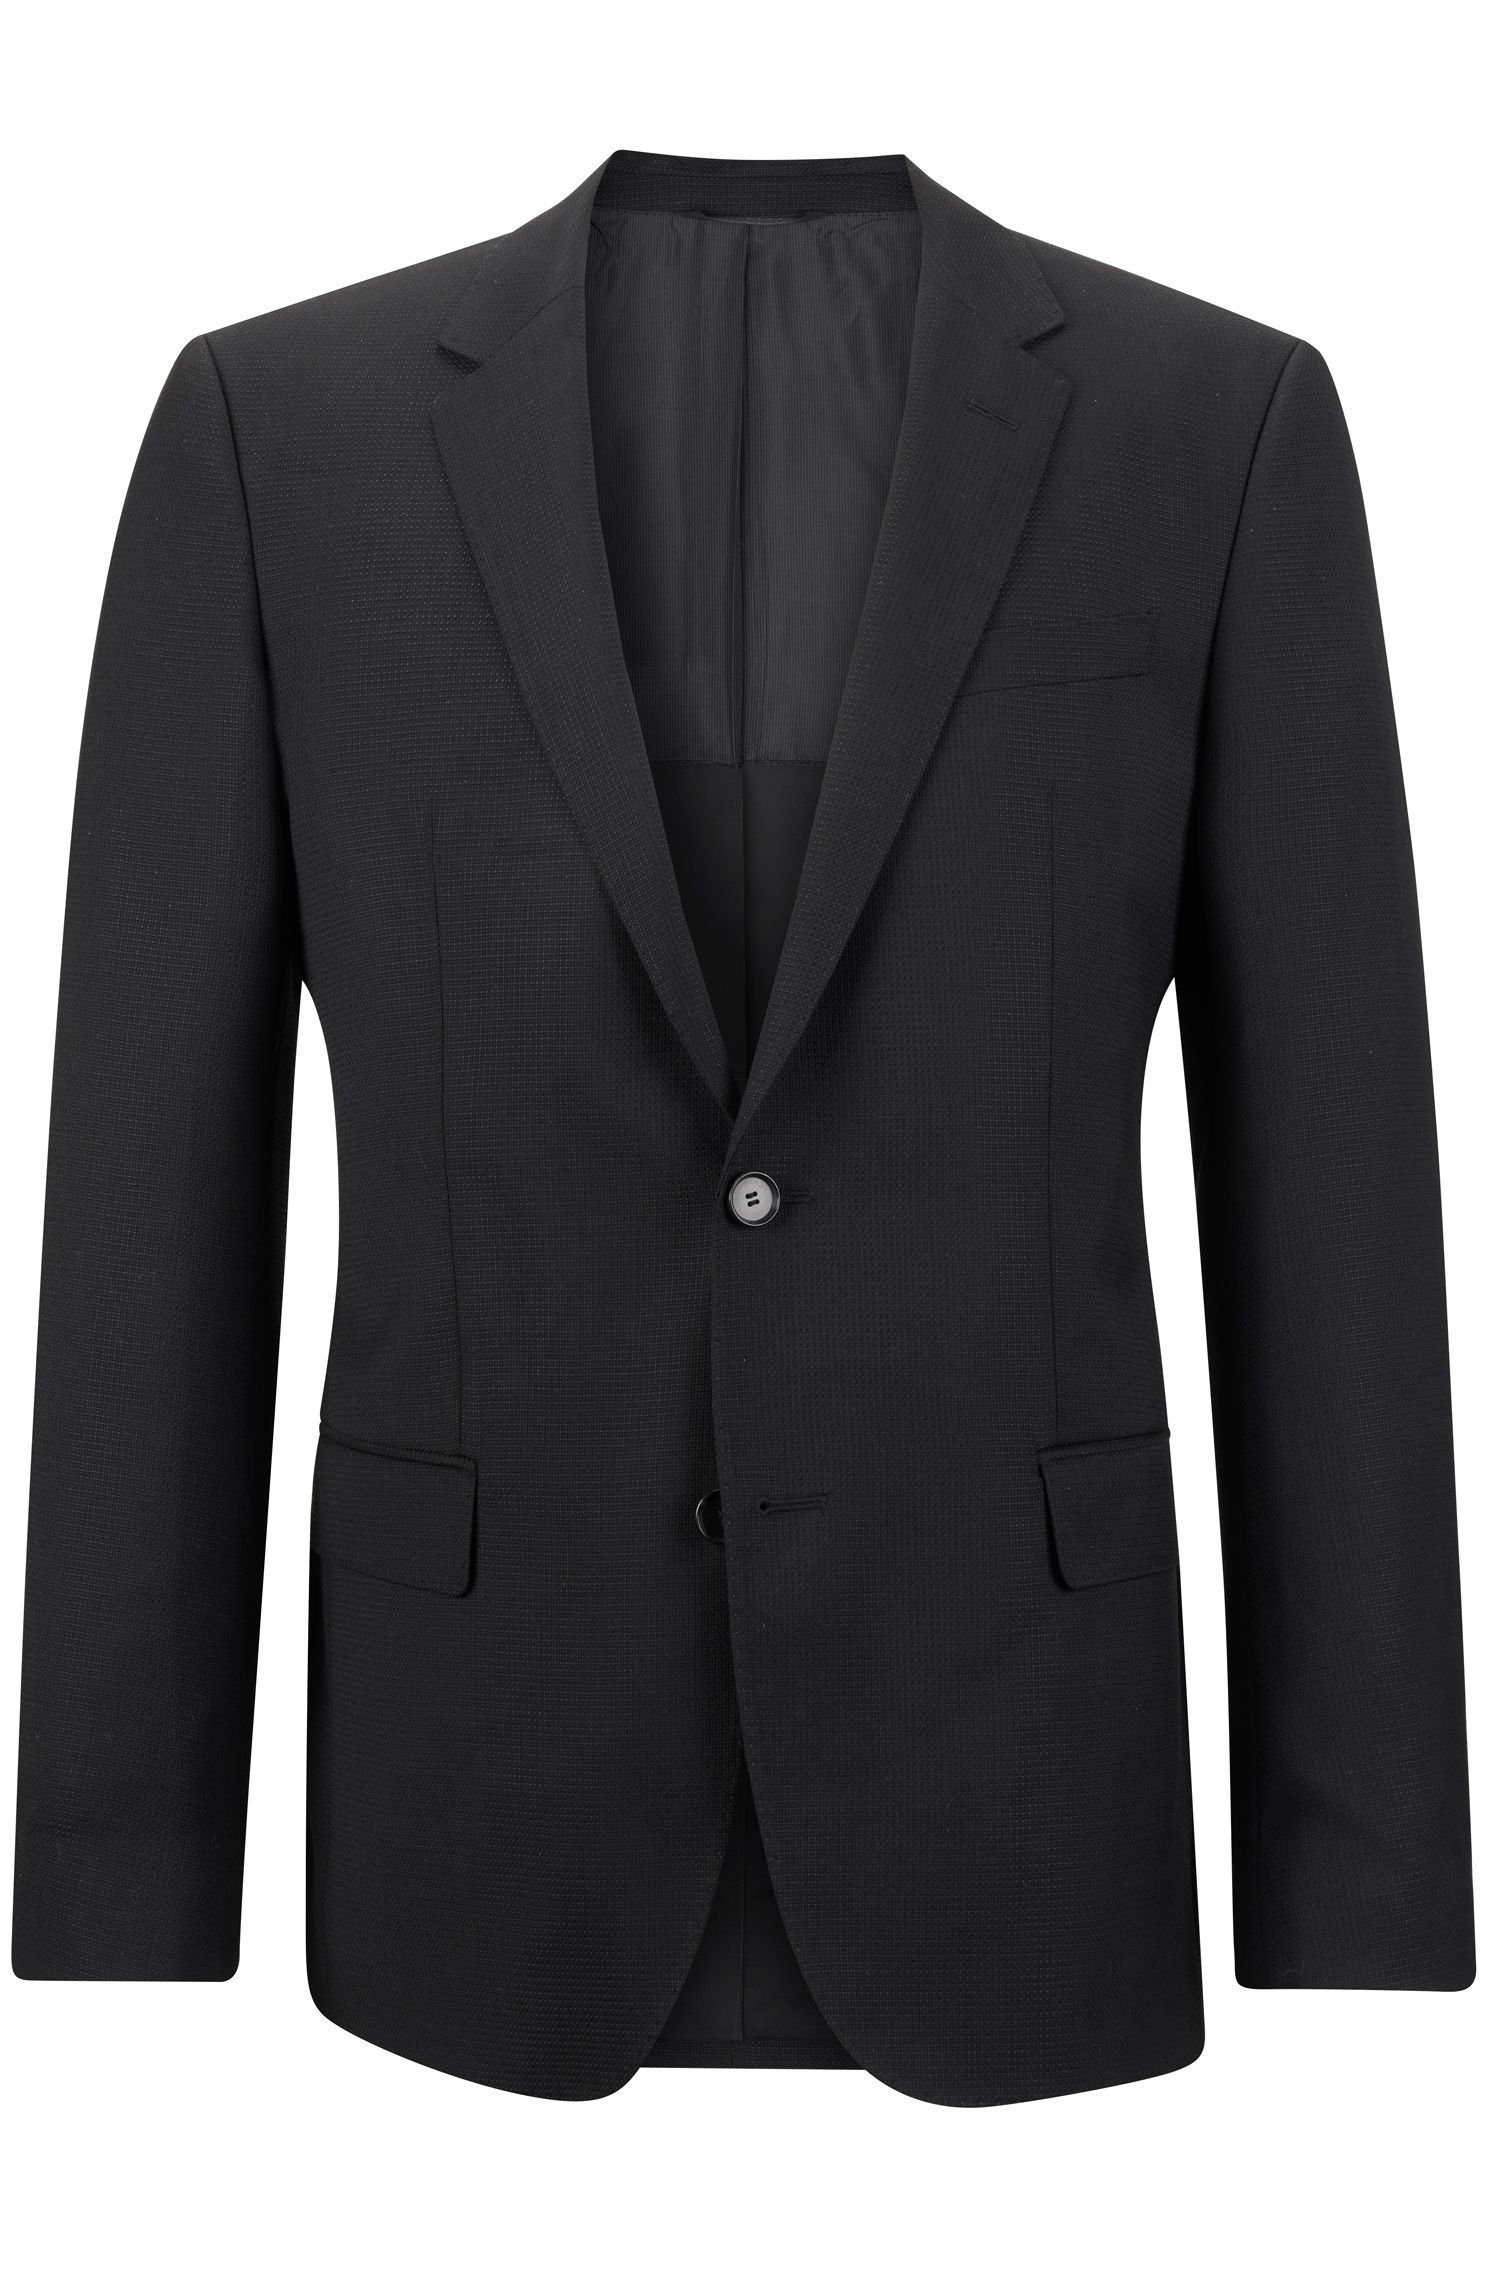 'Hutch' | Slim Fit, Virgin Wool Sport Coat